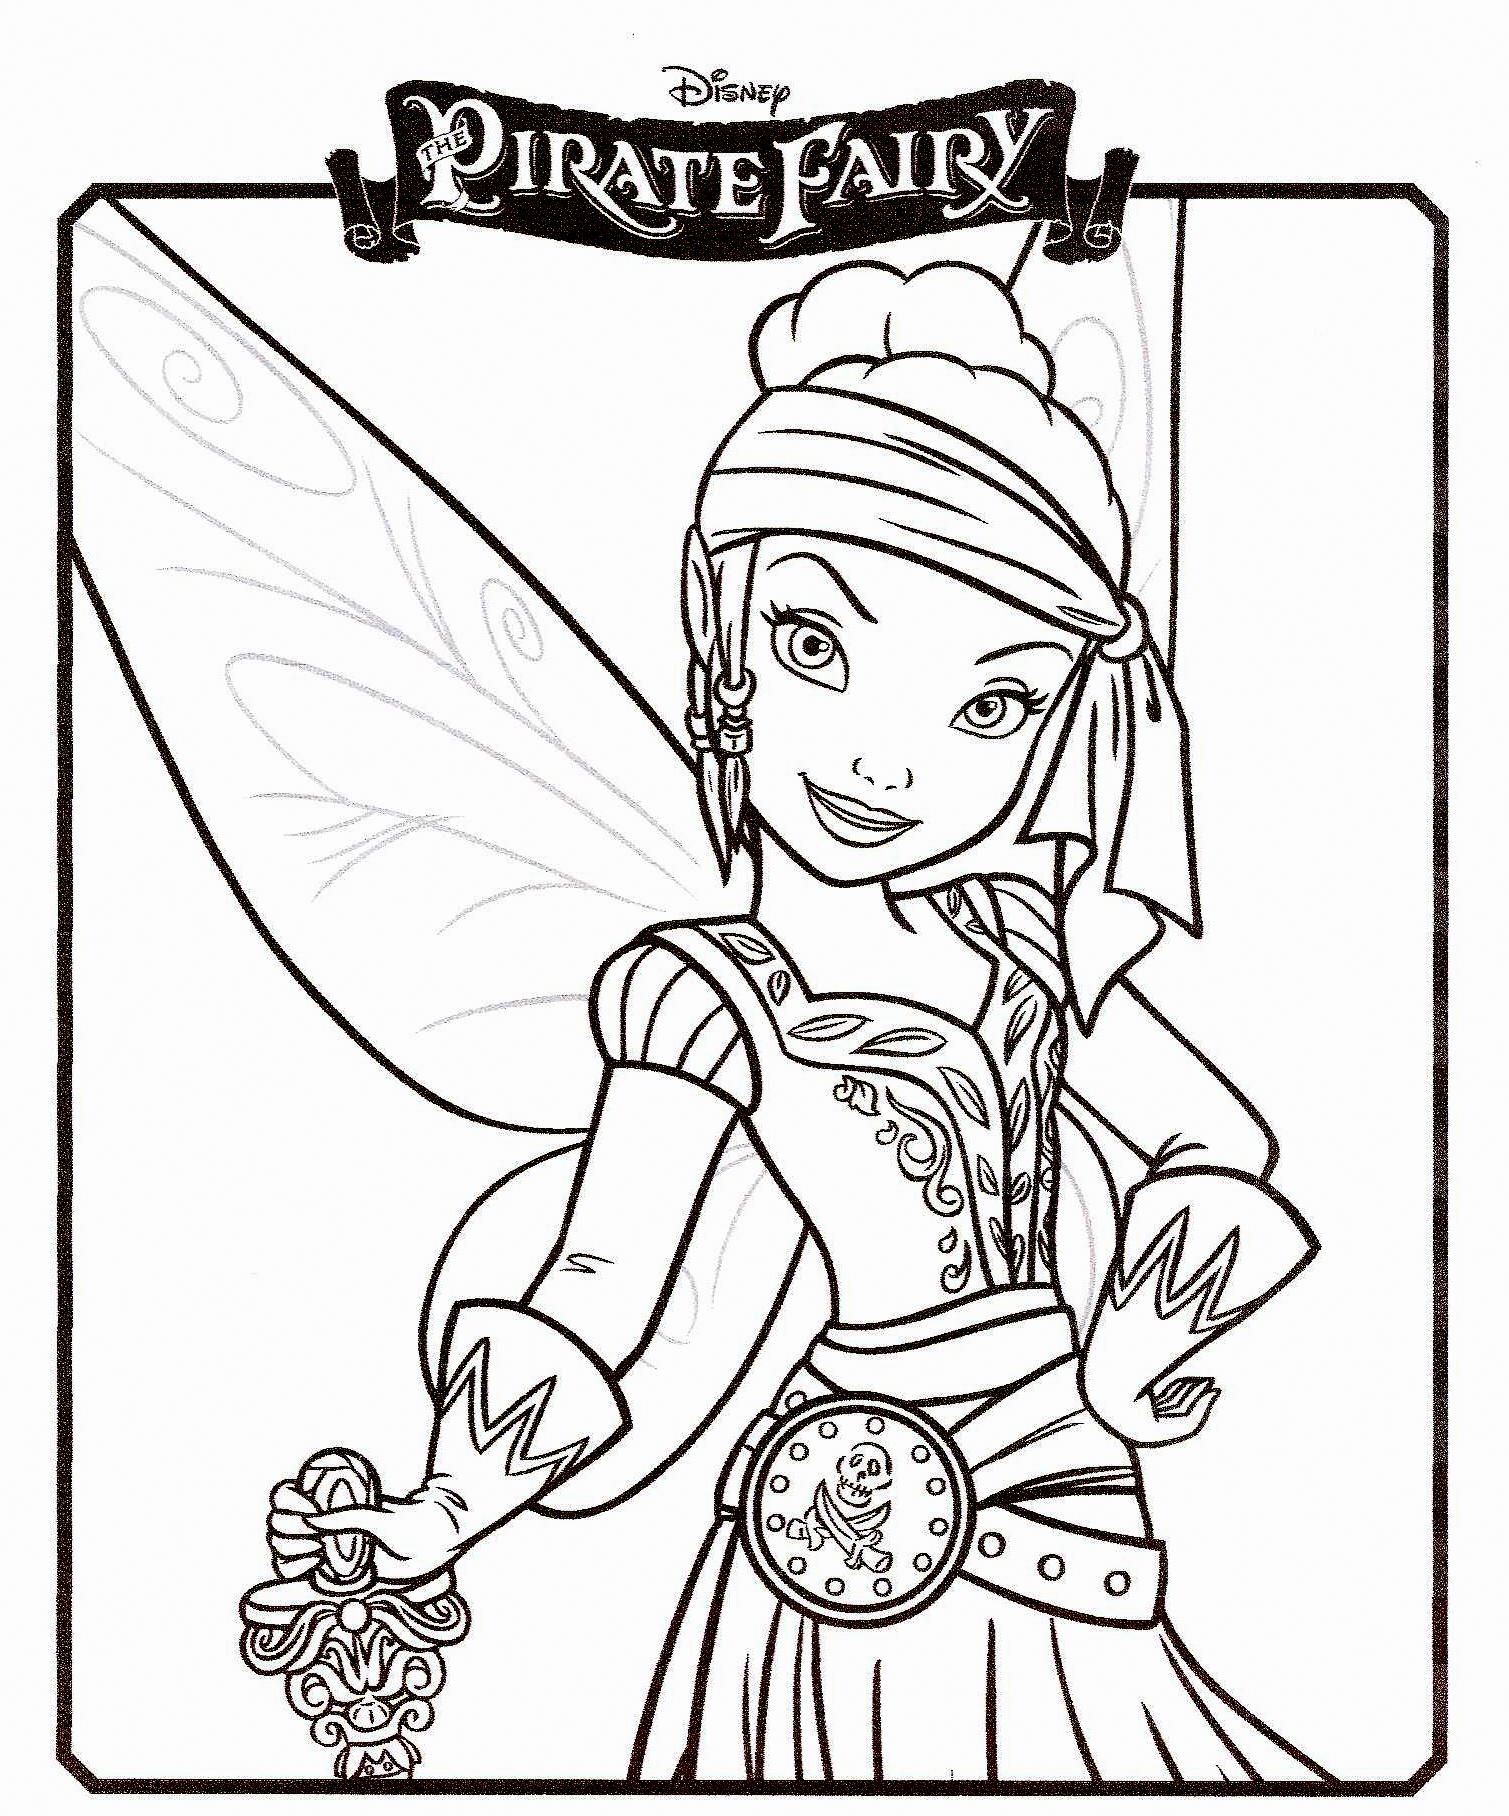 Fairy coloring pages, Fairy coloring, Tinkerbell coloring pages